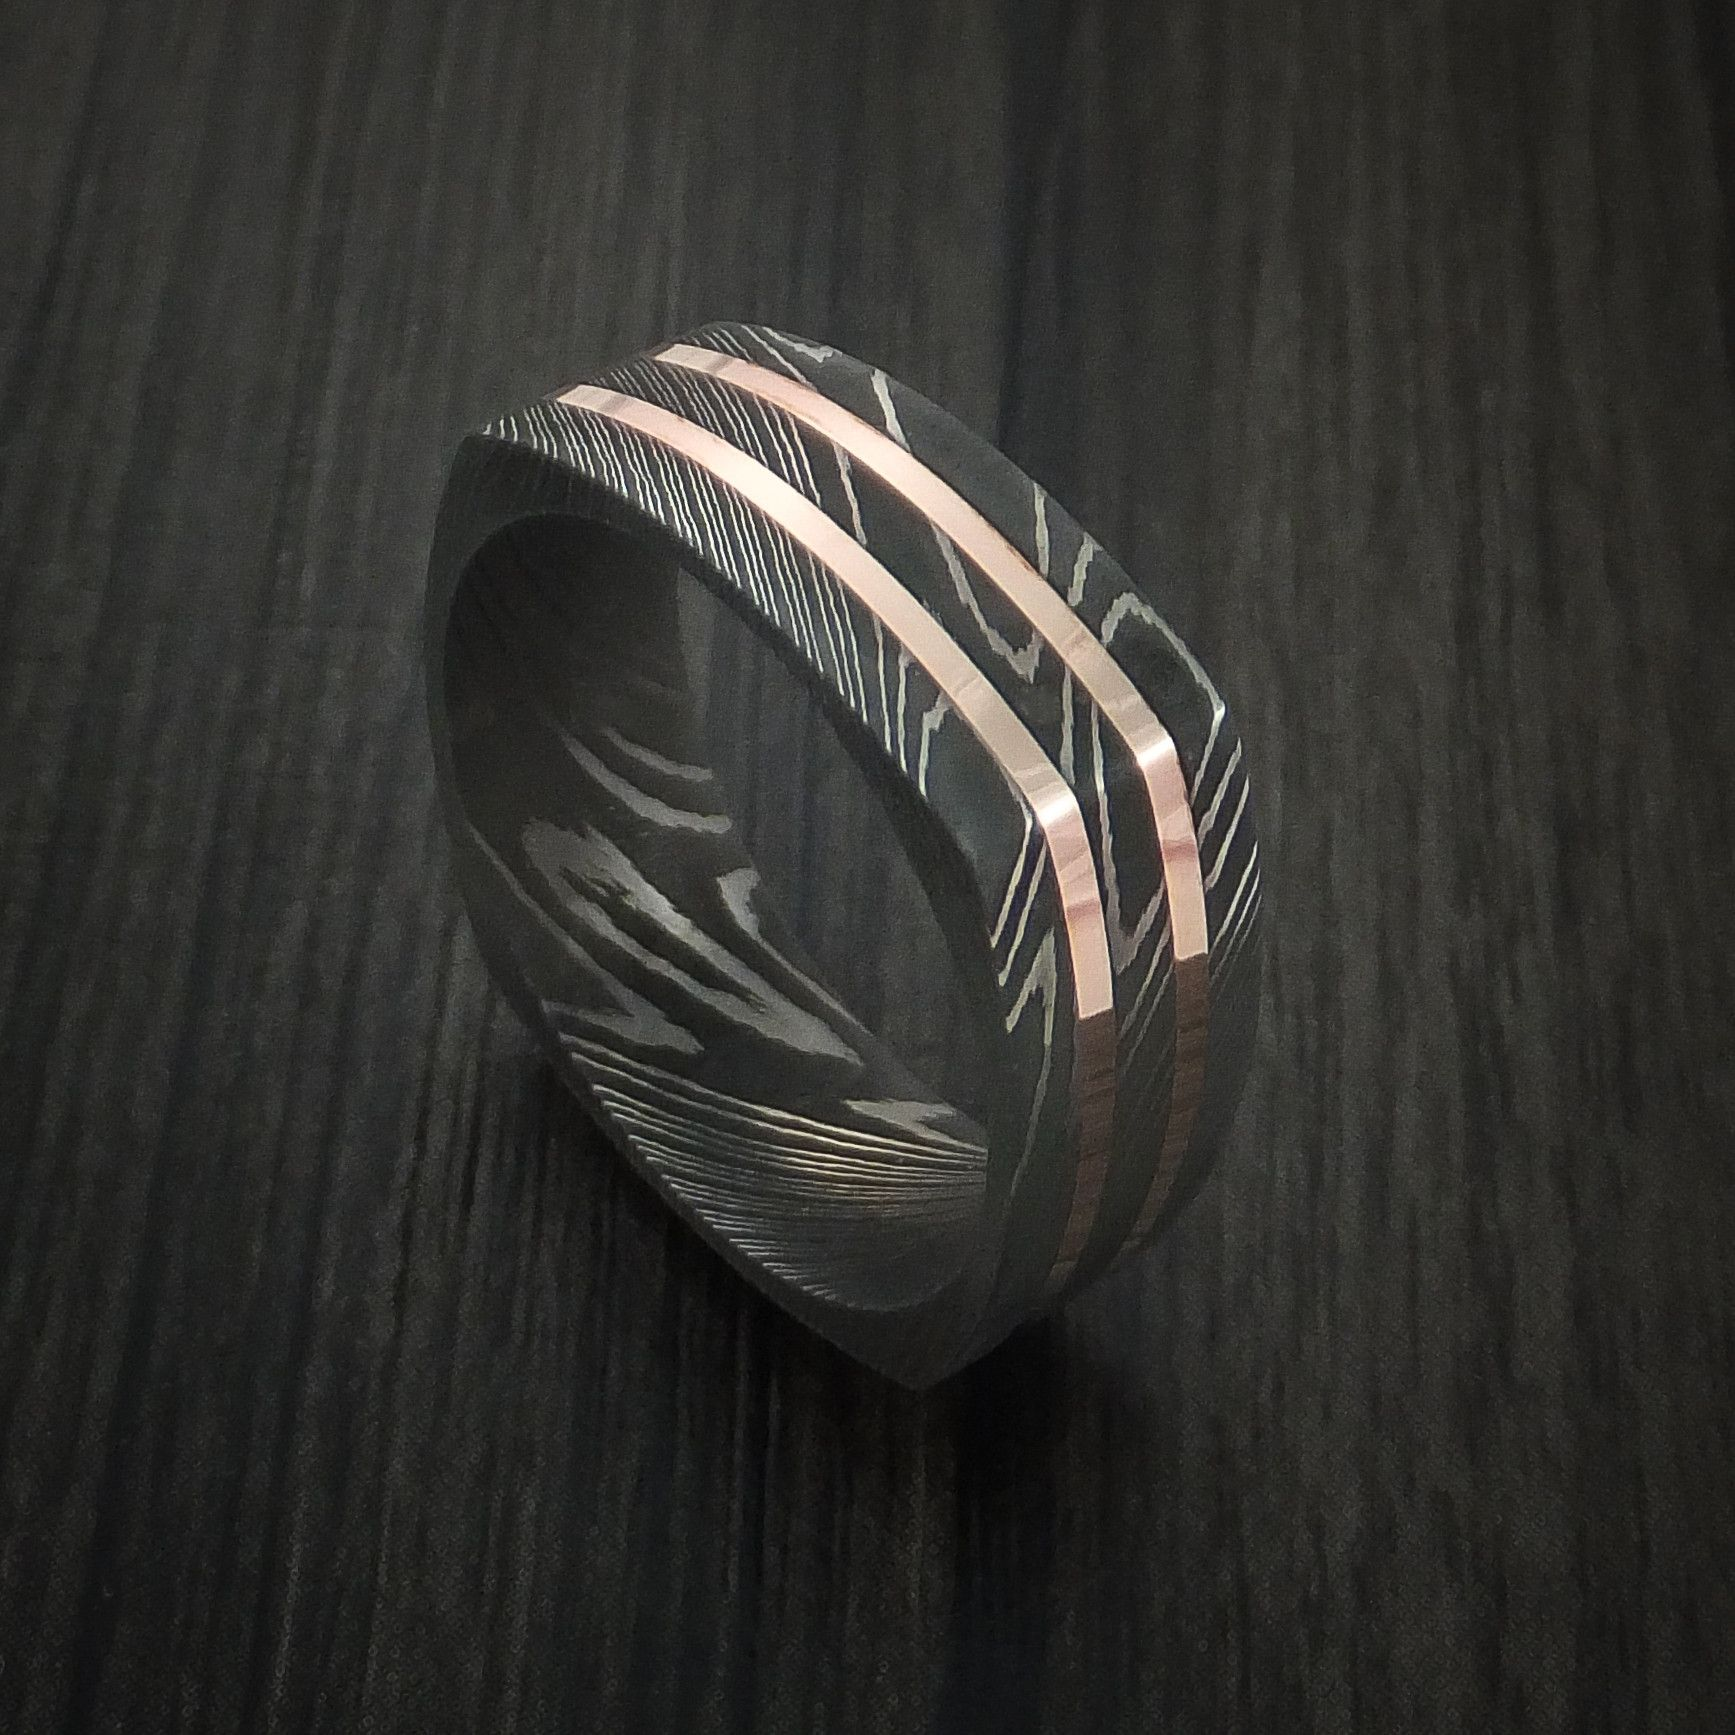 damascus steel wedding bands Squared Damascus Steel Ring with 14k Rose Gold Inlays Custom Made Band